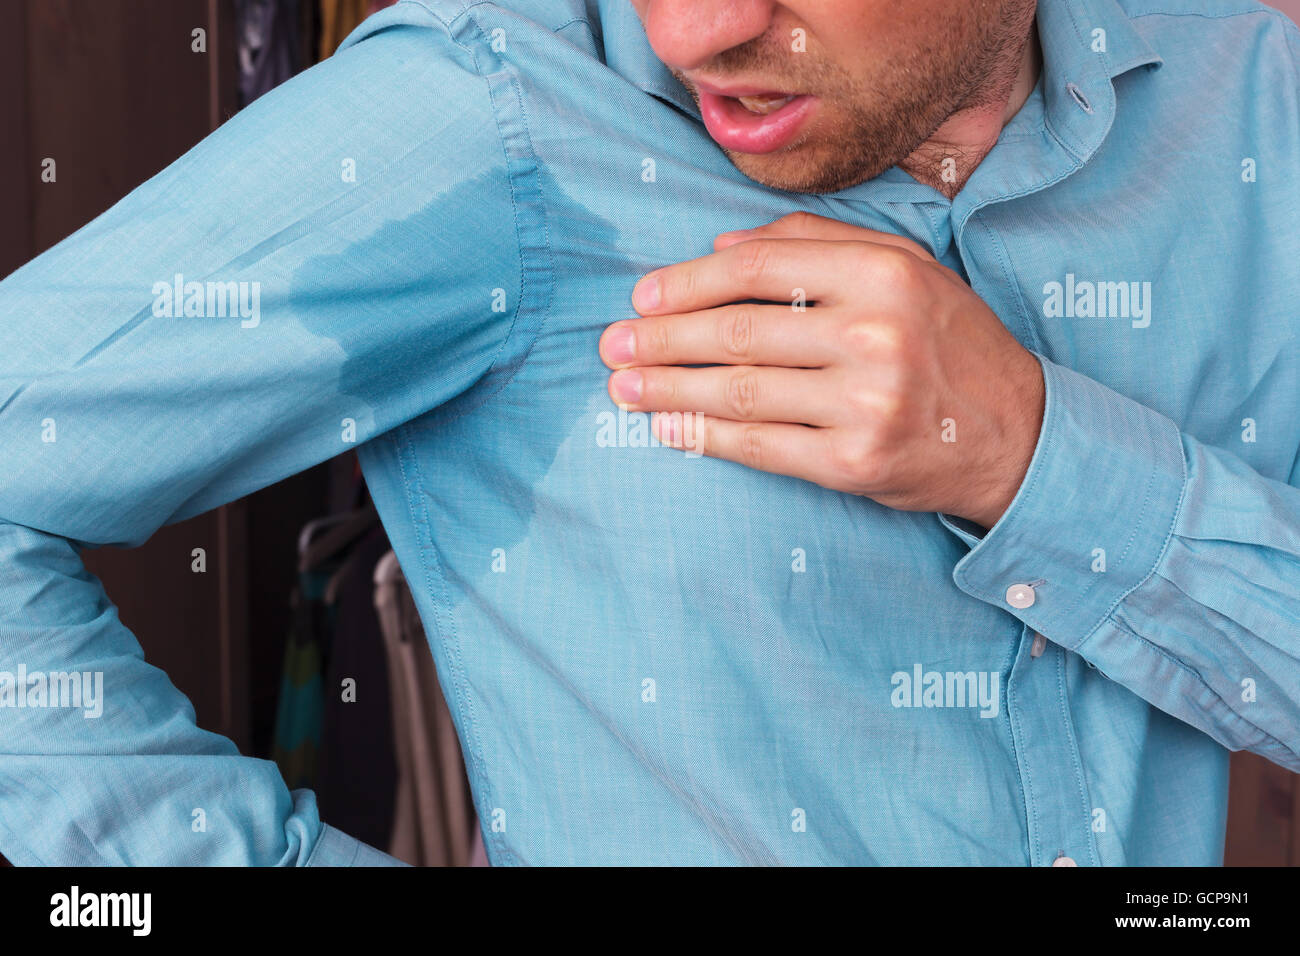 Sweaty spot on the shirt because of the heat, worries and diffidence - Stock Image